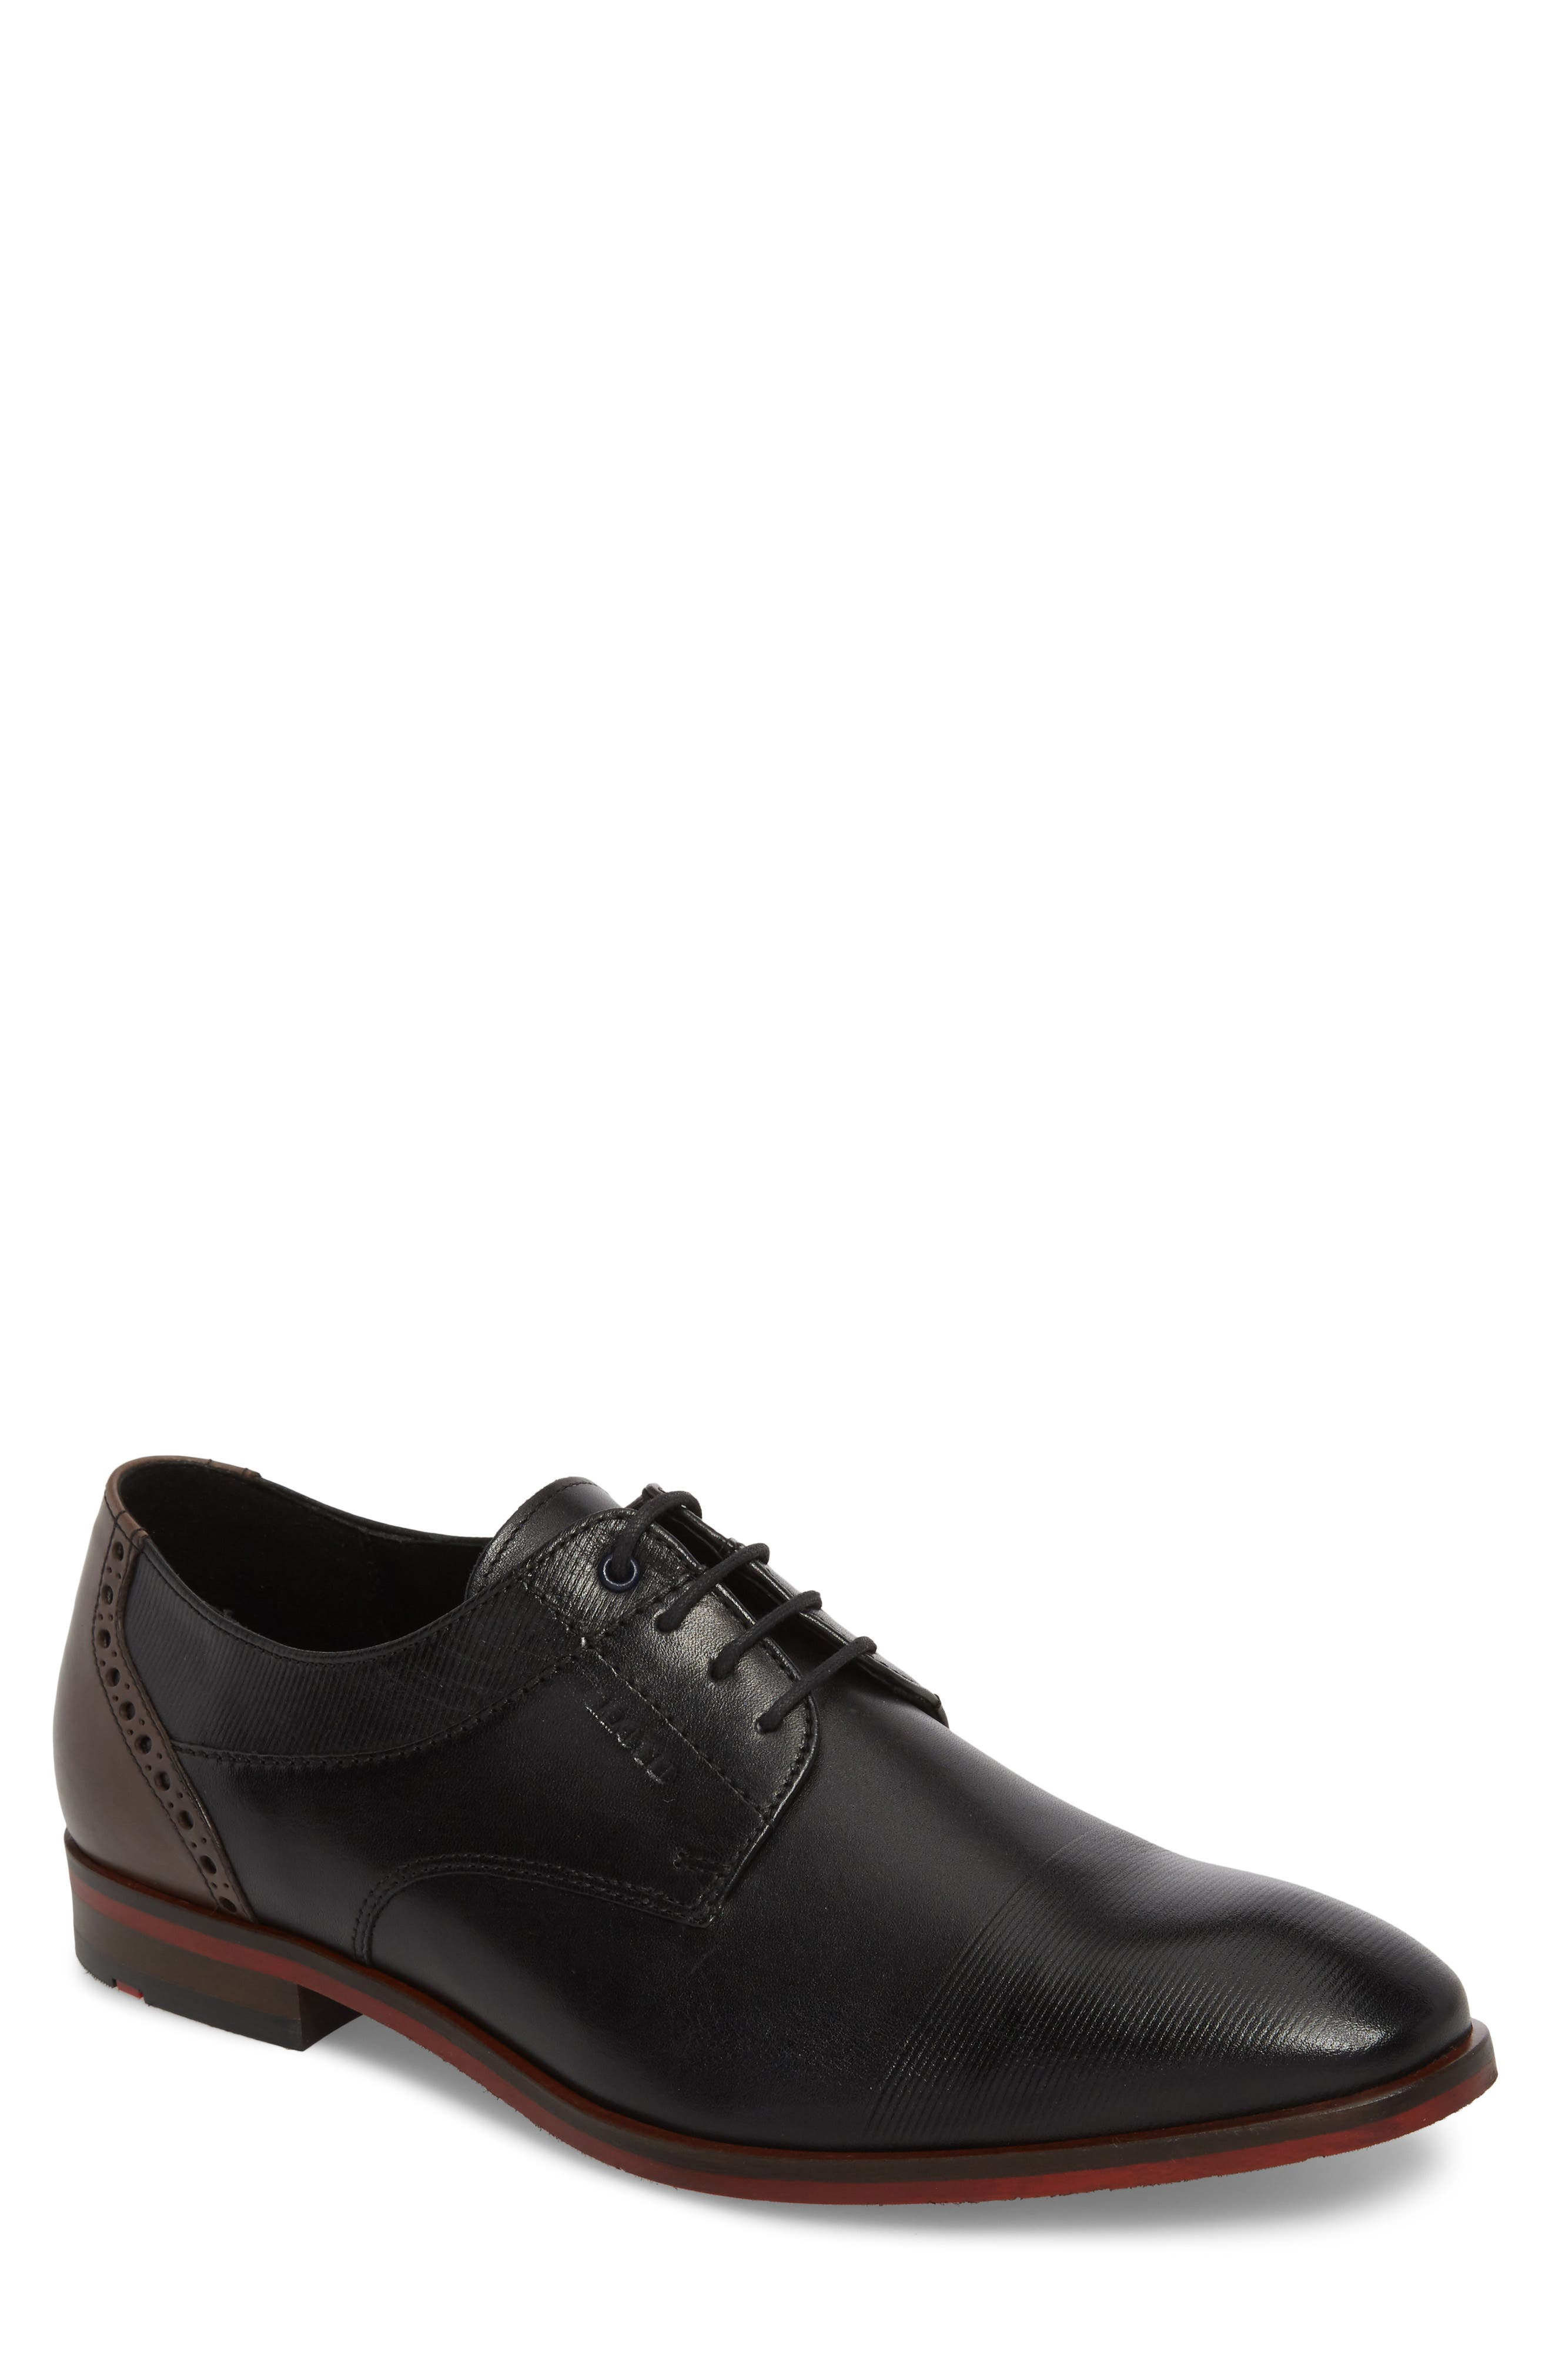 Henley Embossed Cap Toe Derby,                             Main thumbnail 1, color,                             BLACK/ BLUE LEATHER